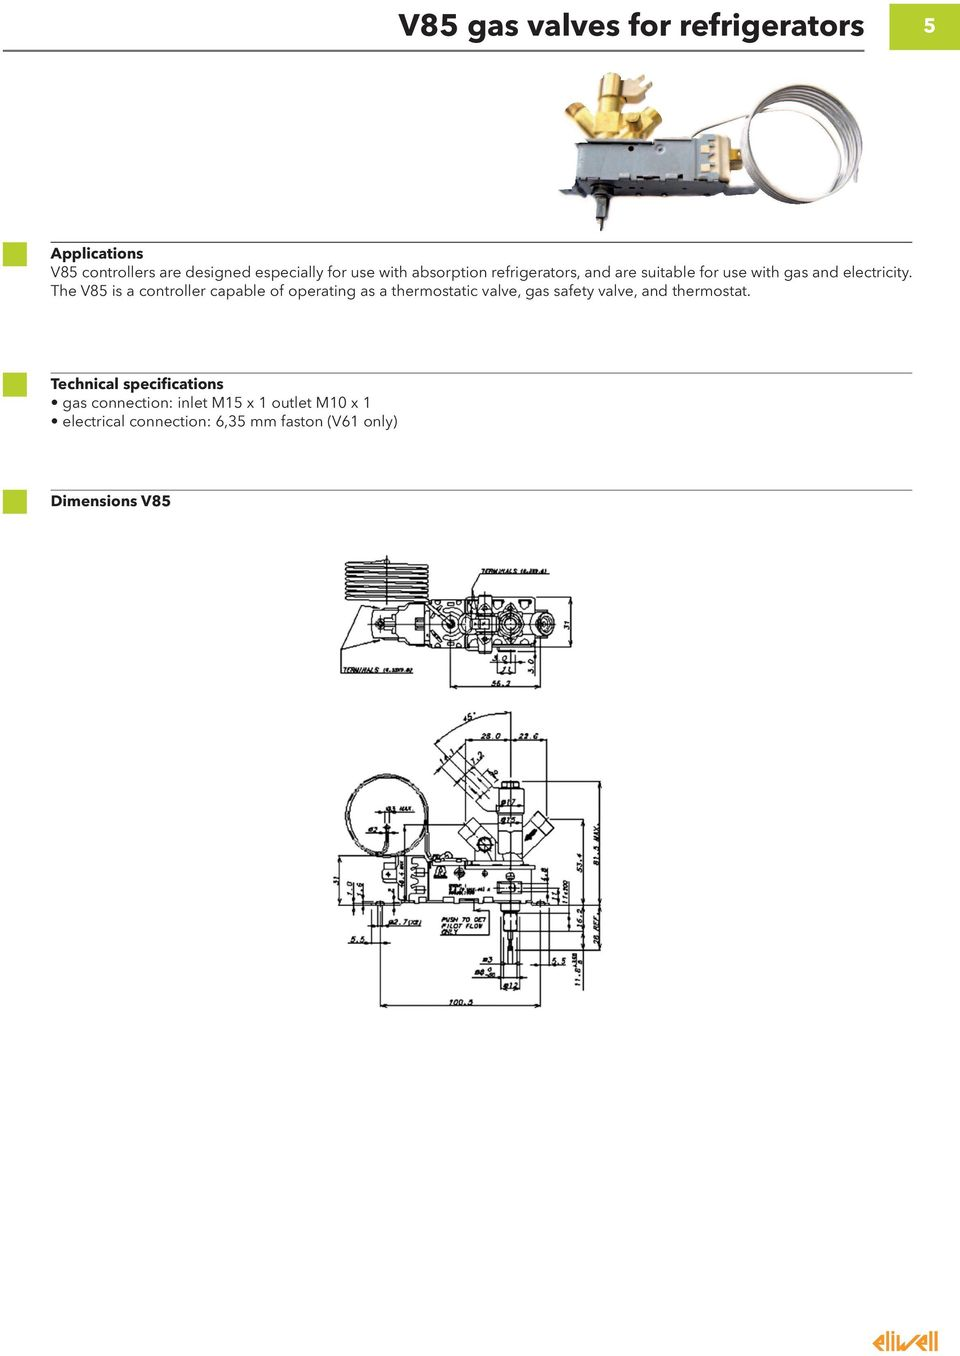 Ranco Thermostat Wiring Diagram G1 | New Wiring Resources 2019 on